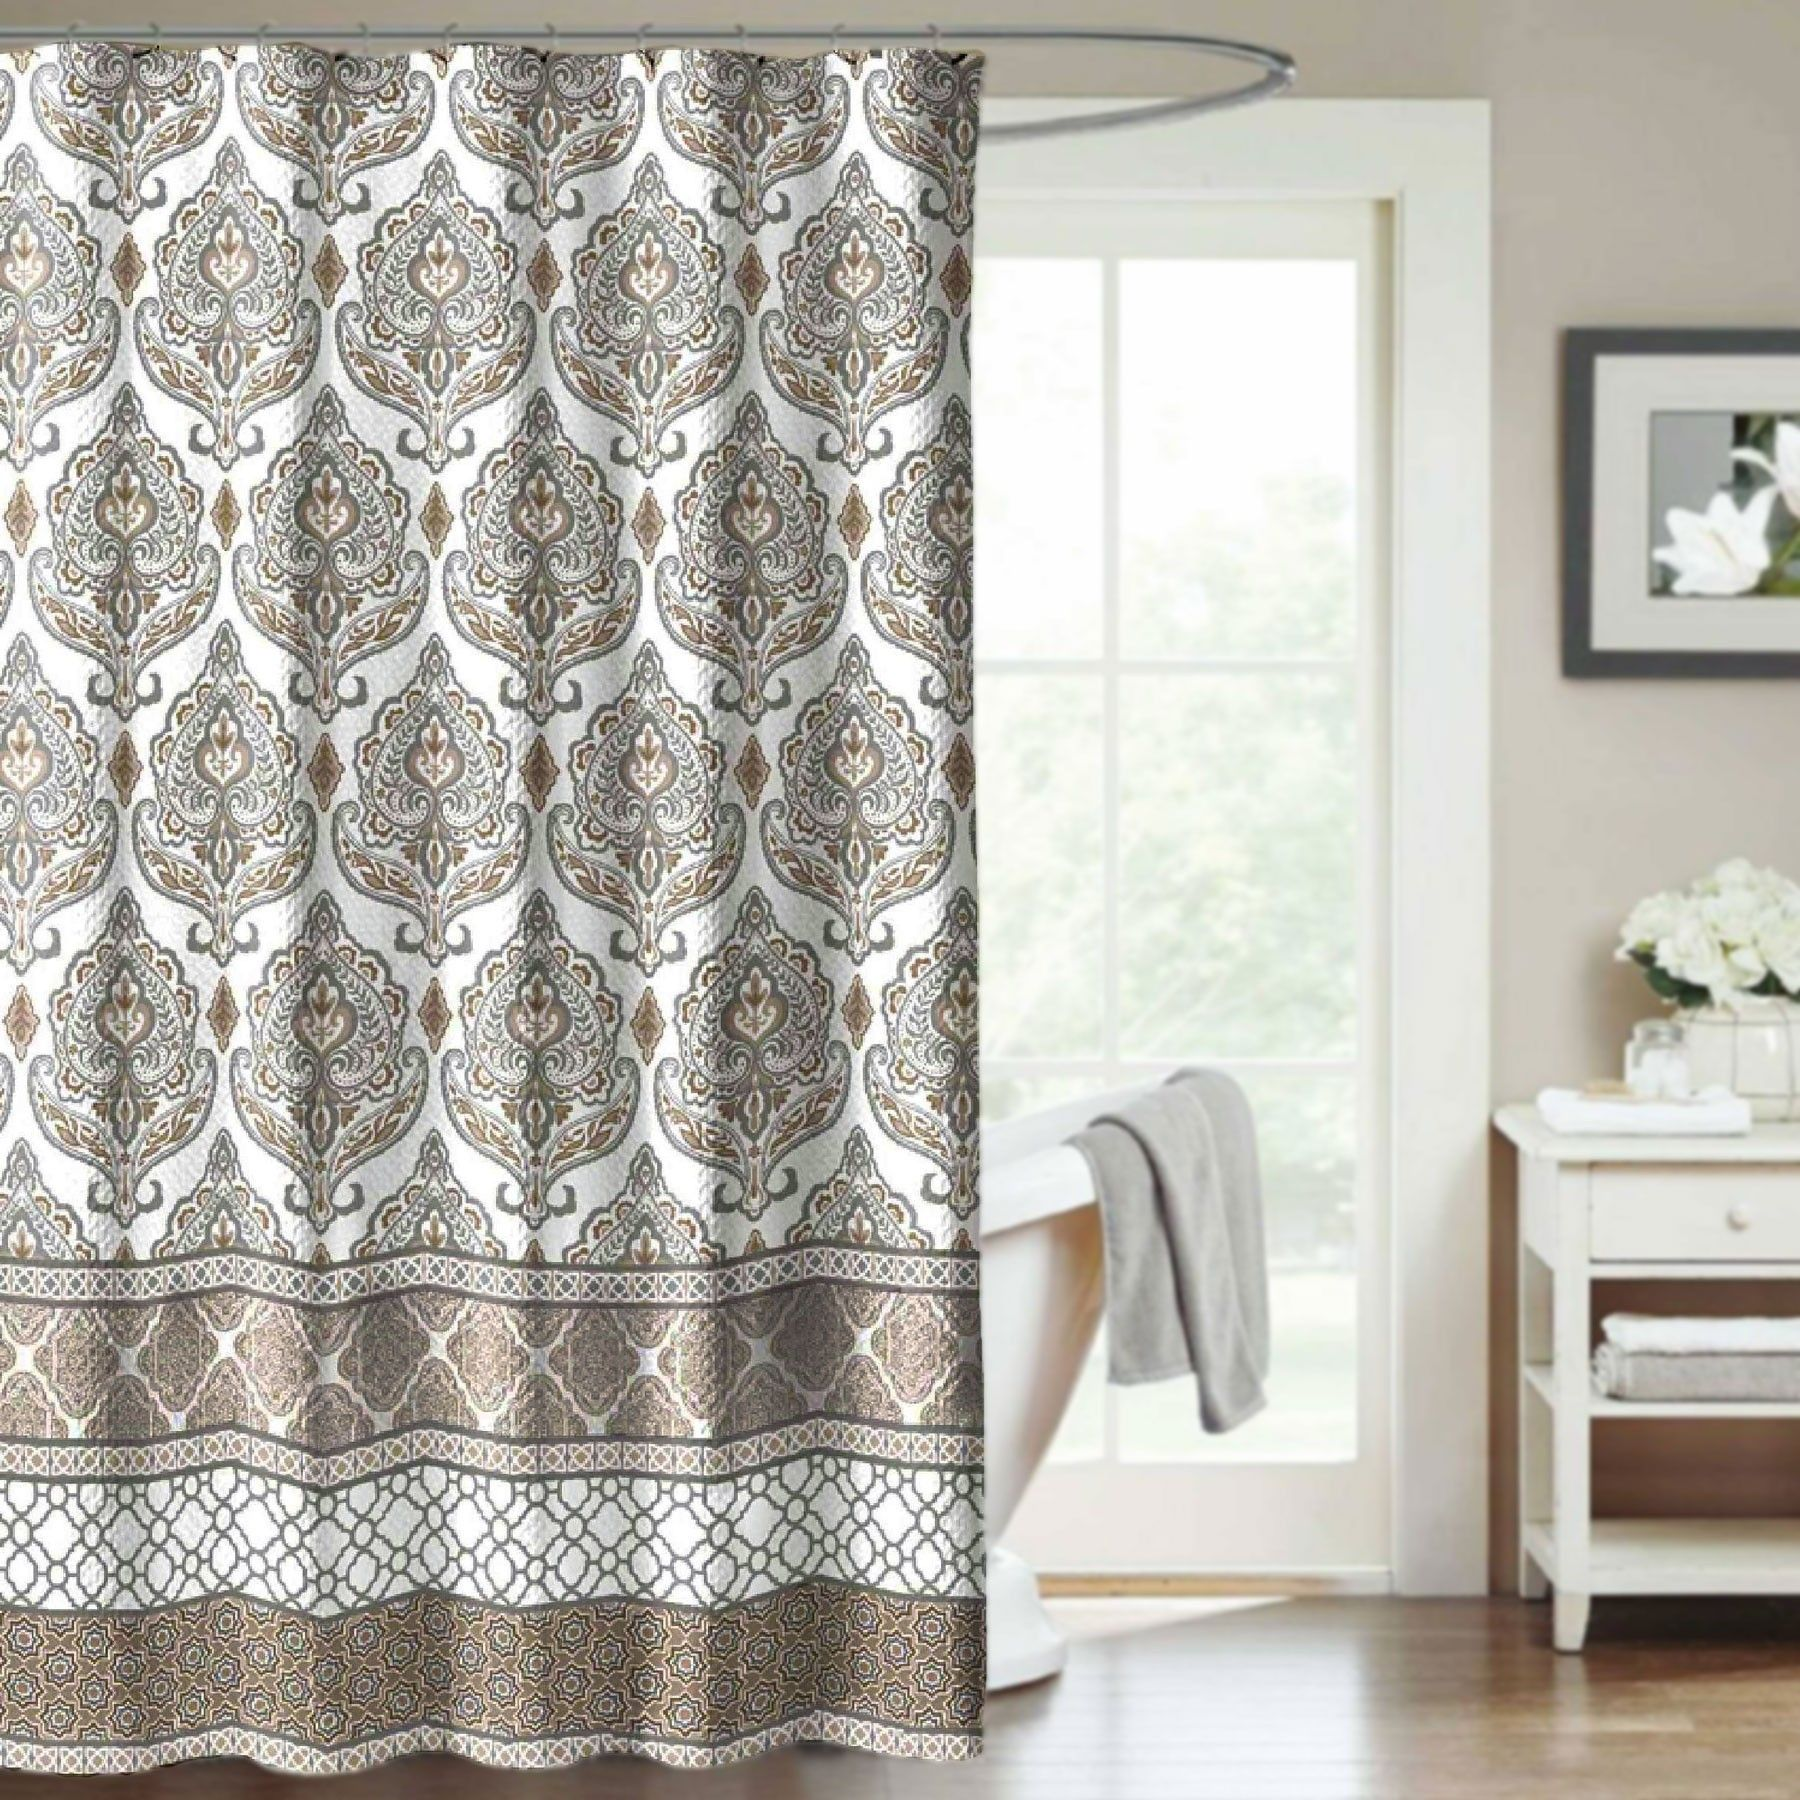 fabric shower curtains floral damask